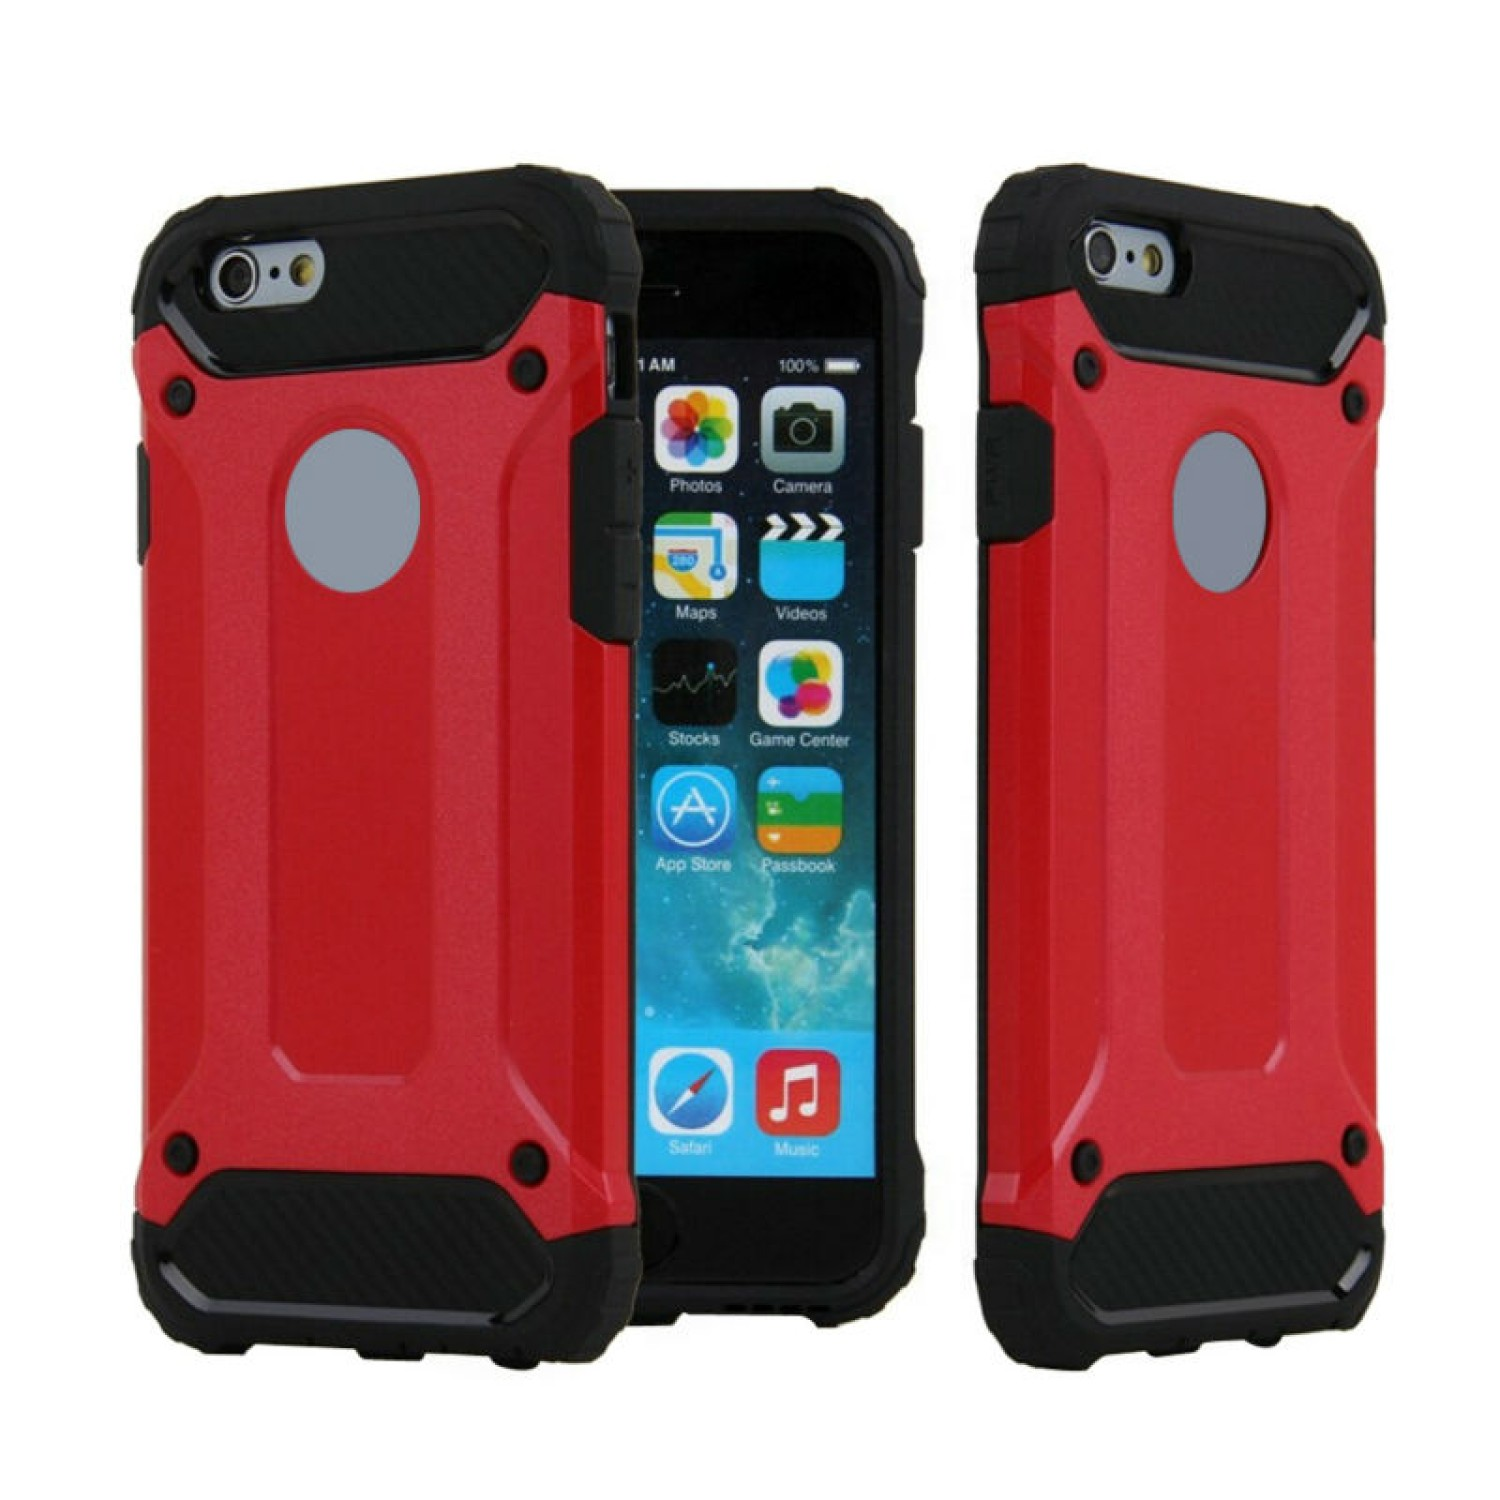 SGP Rugged Armor For IPhone 5C Case Slim & Soft TPU Drop ...